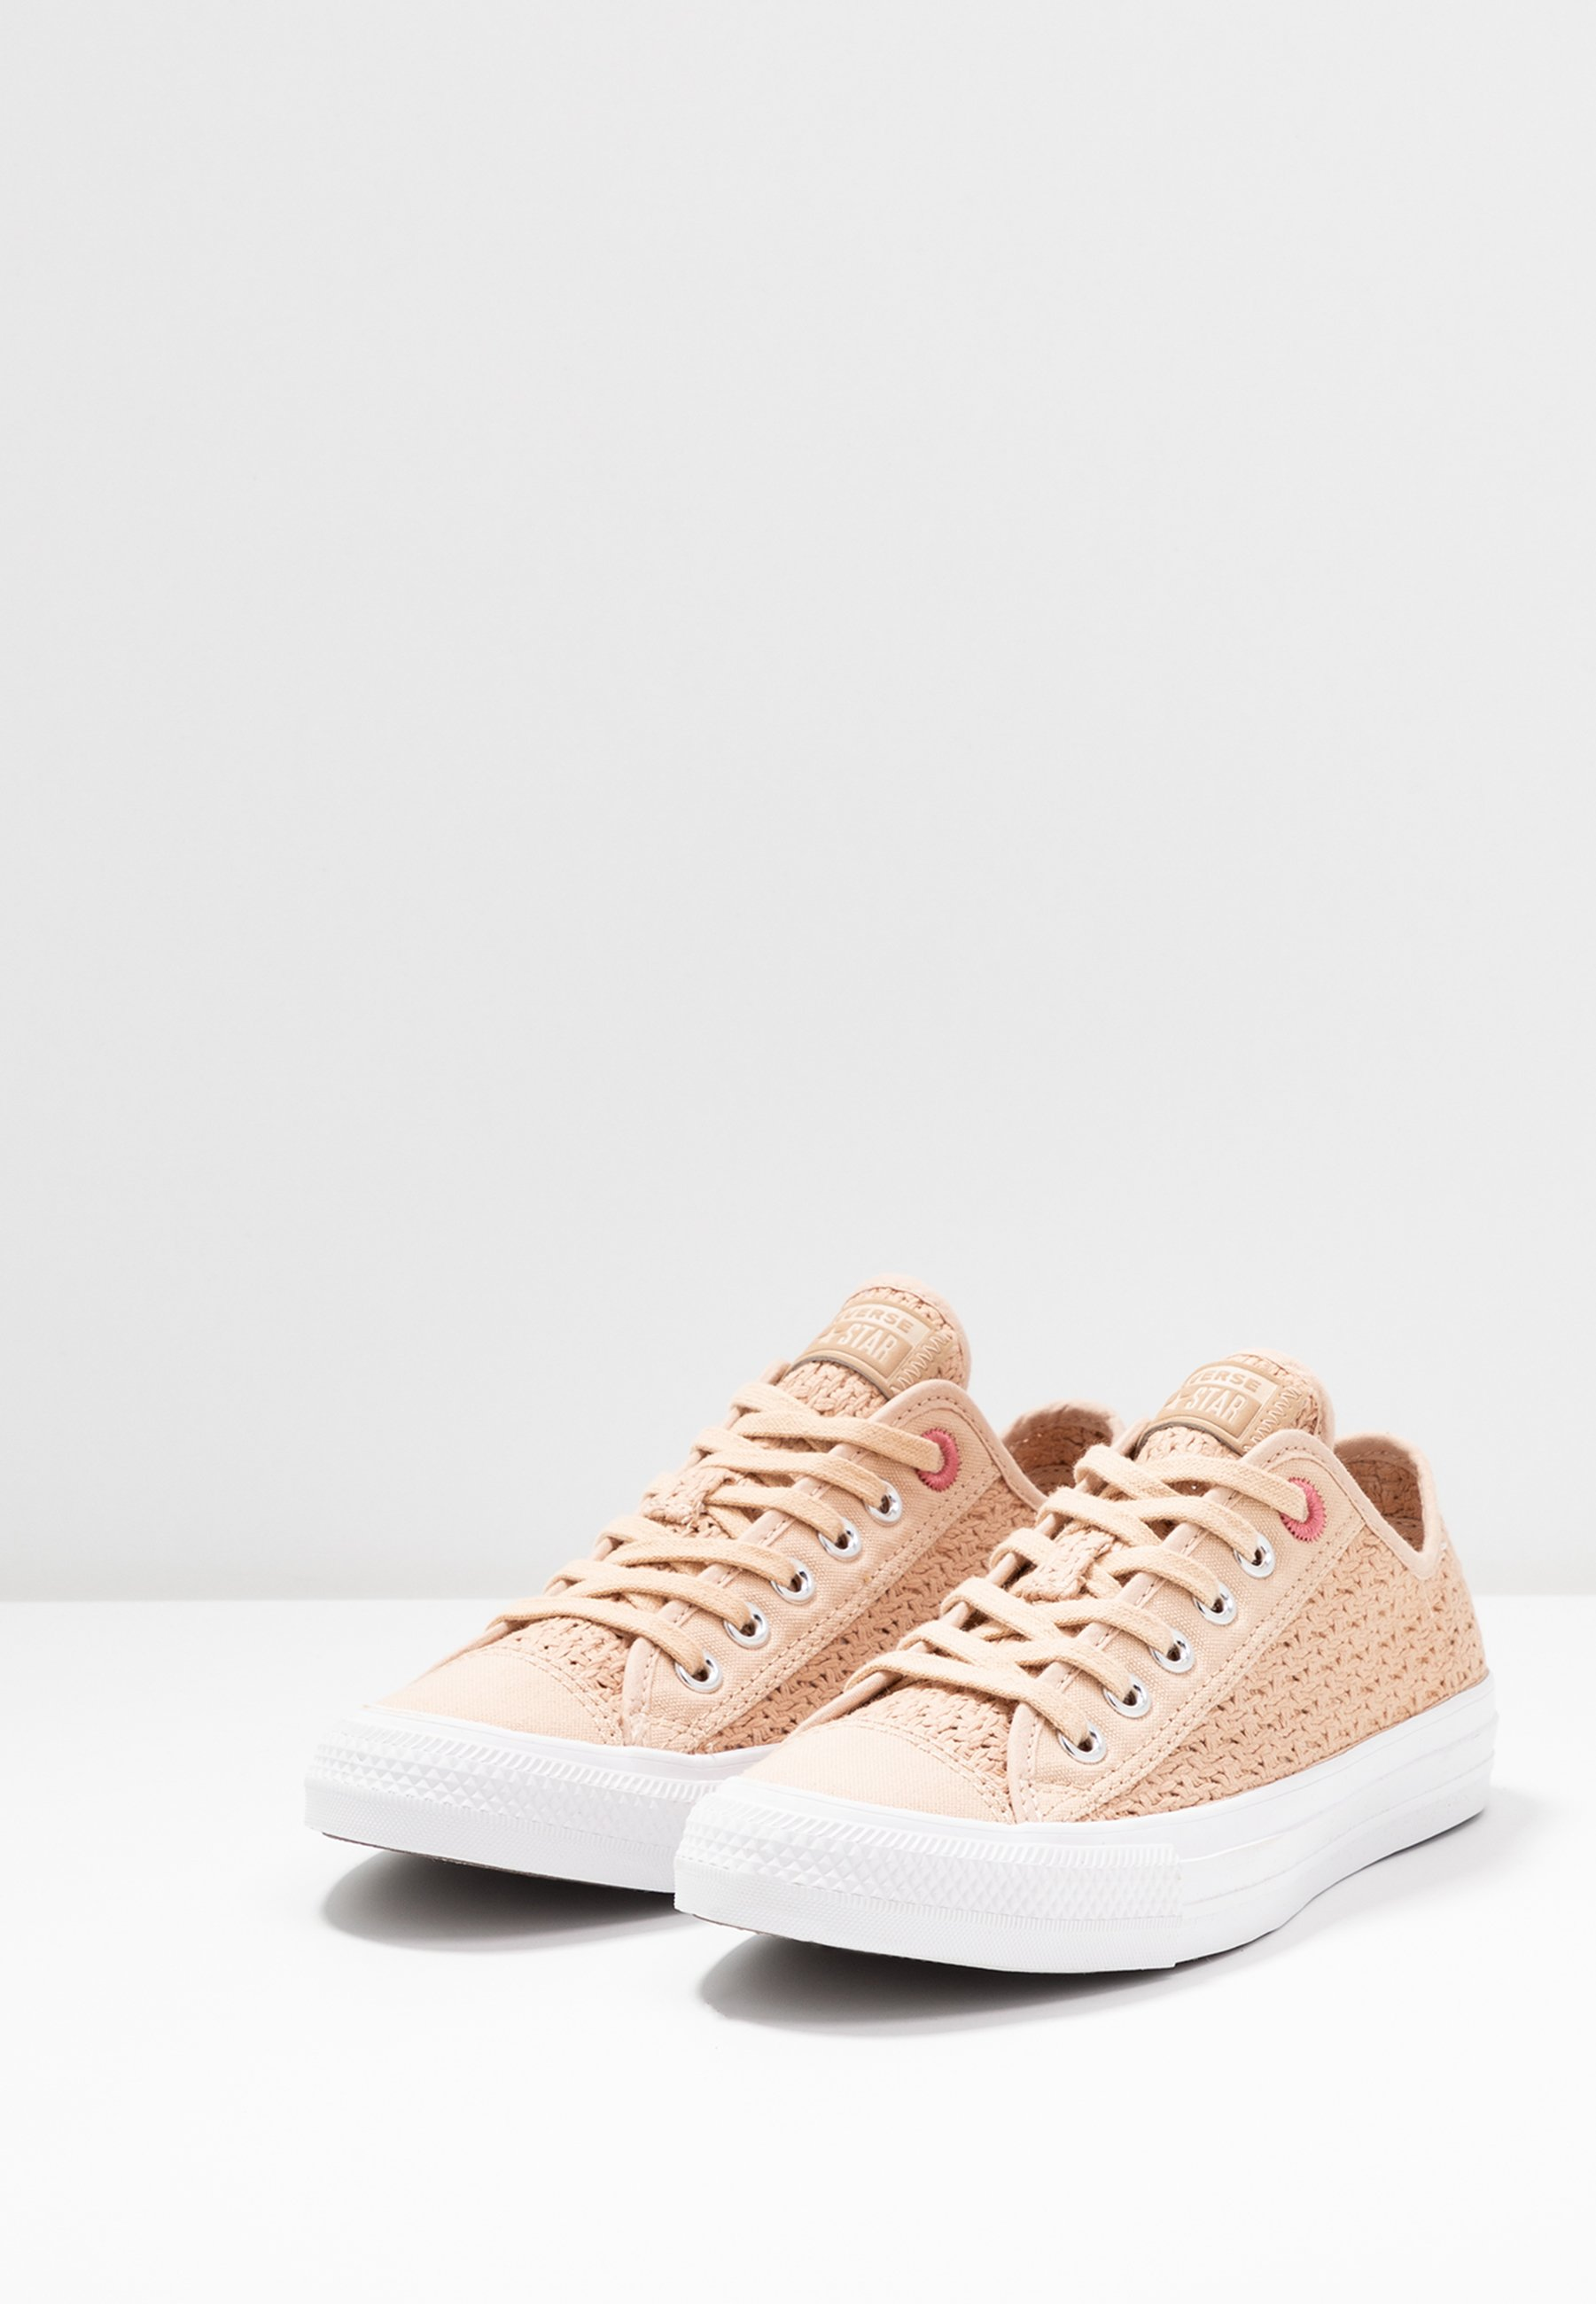 CHUCK TAYLOR ALL STAR Sneakers shimmermadder pinkwhite